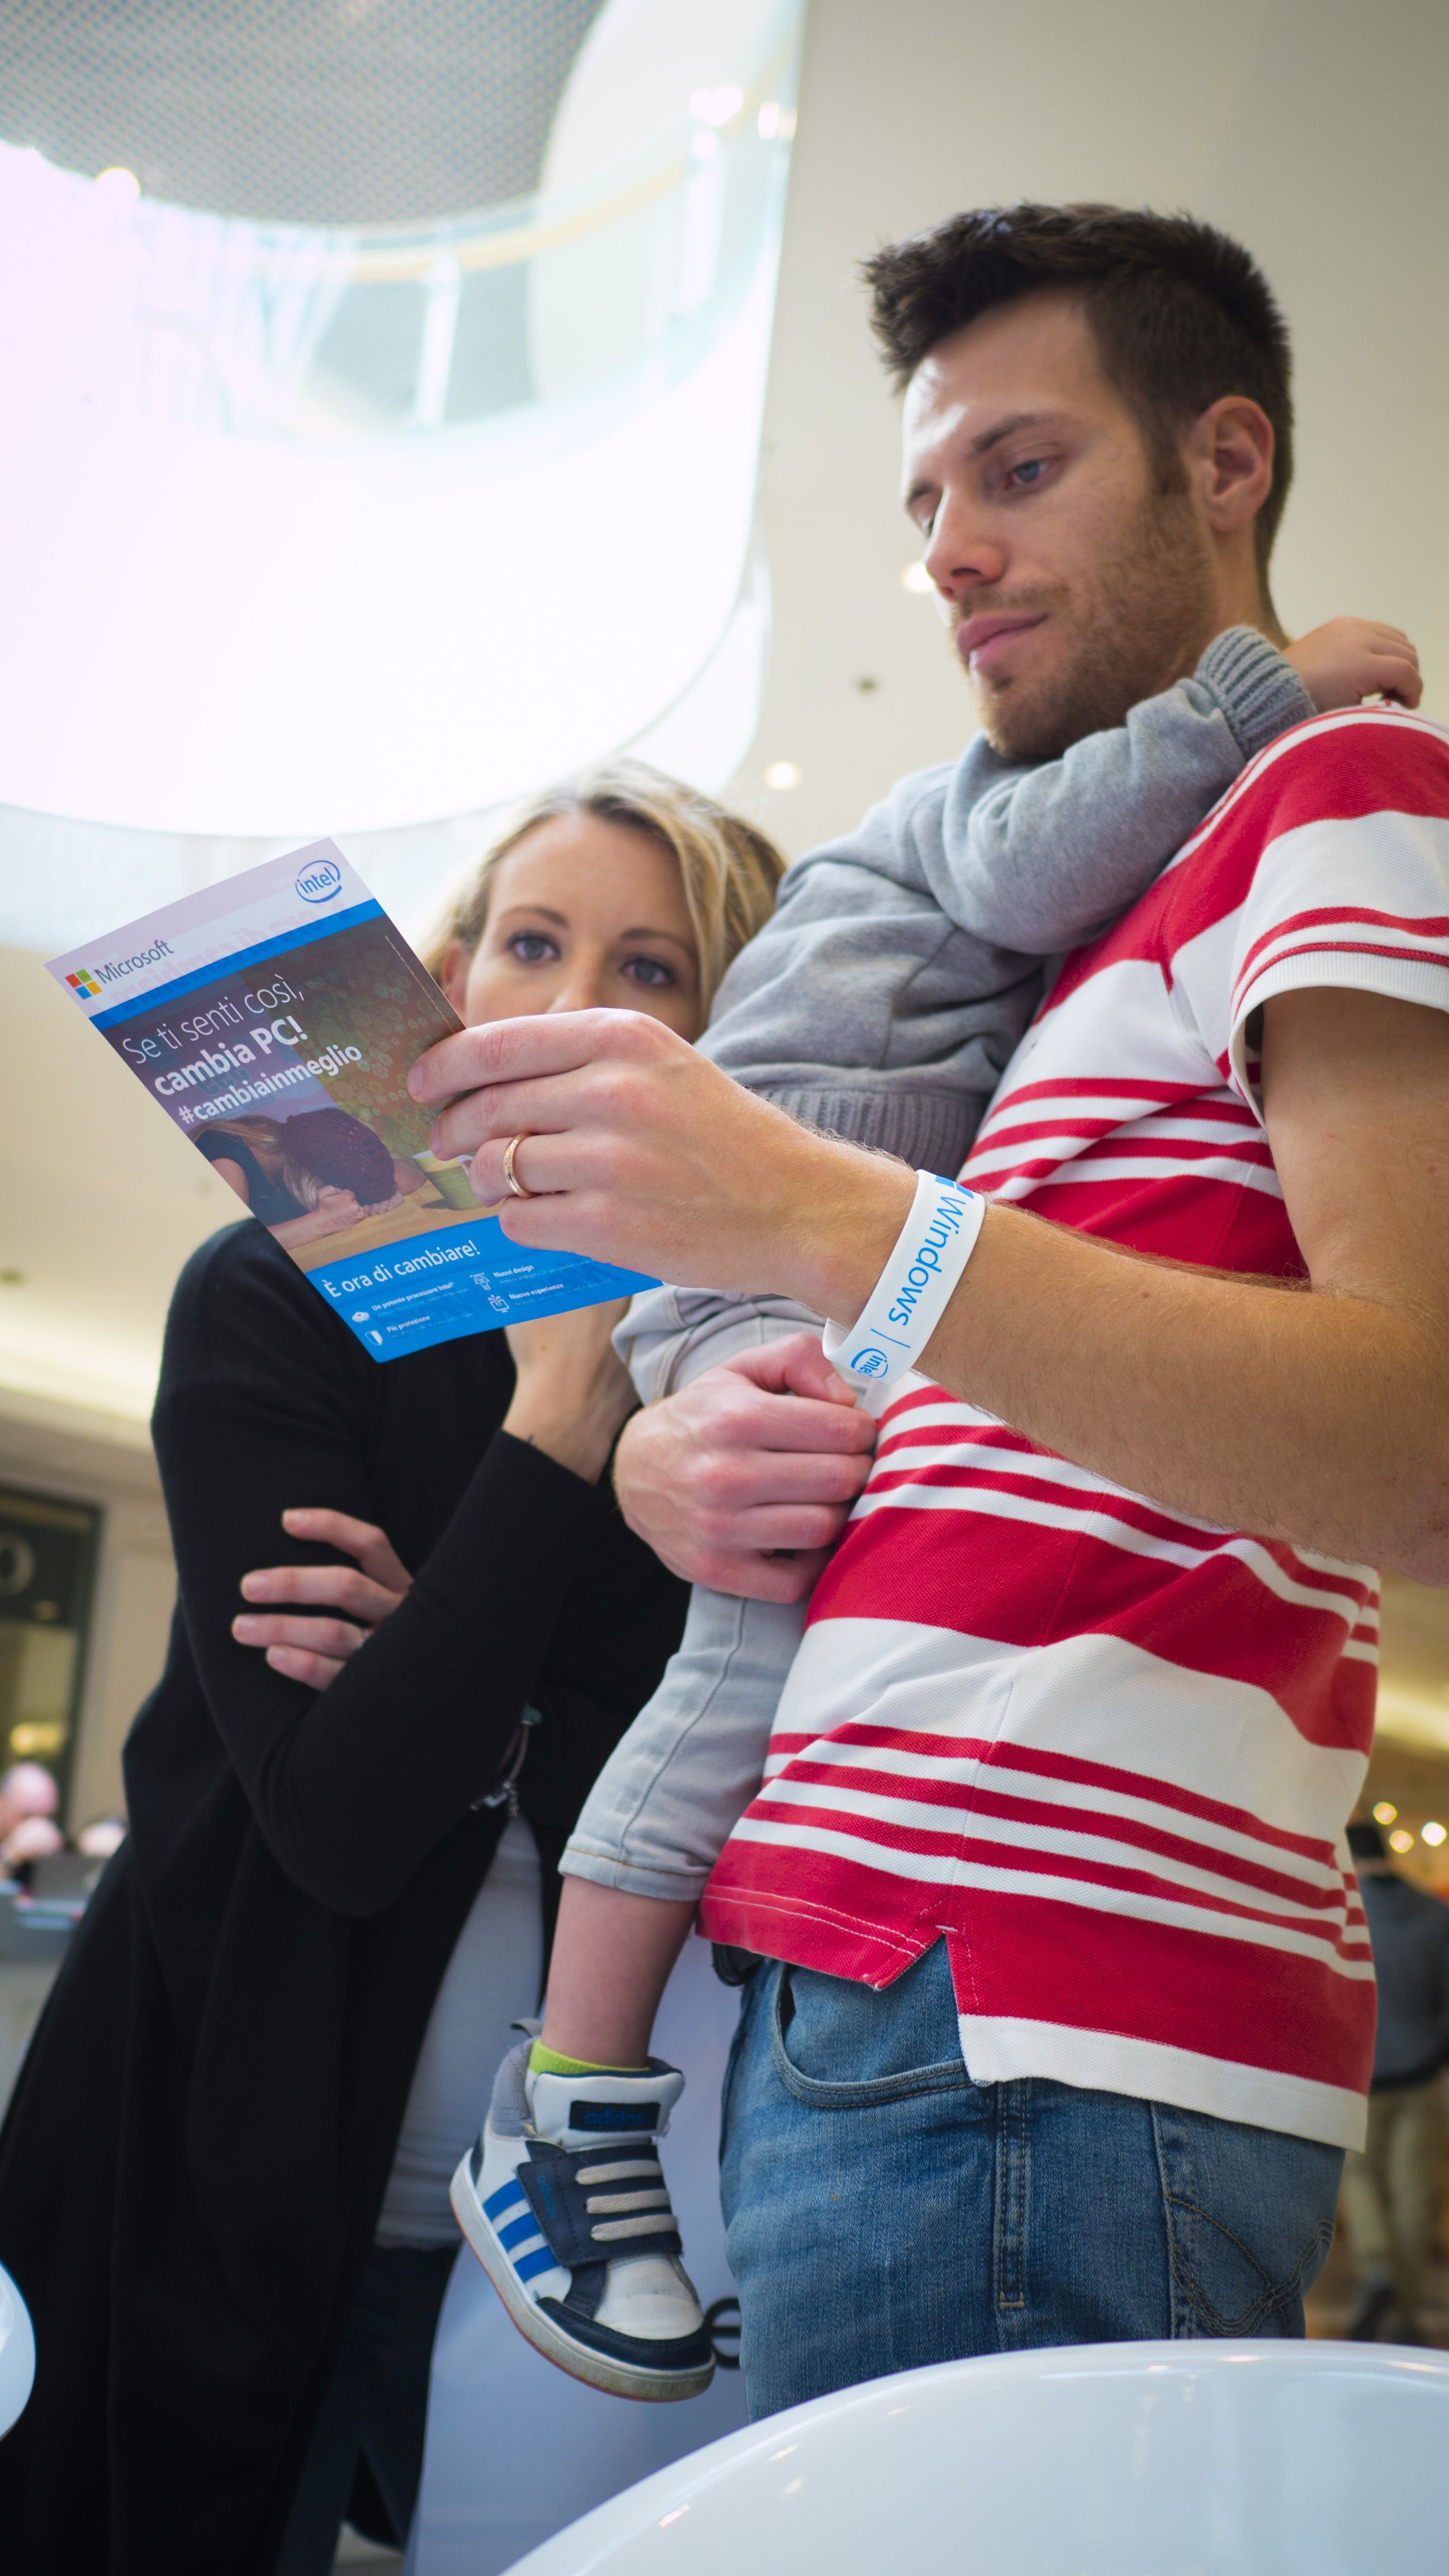 Branded Flyer and Customers